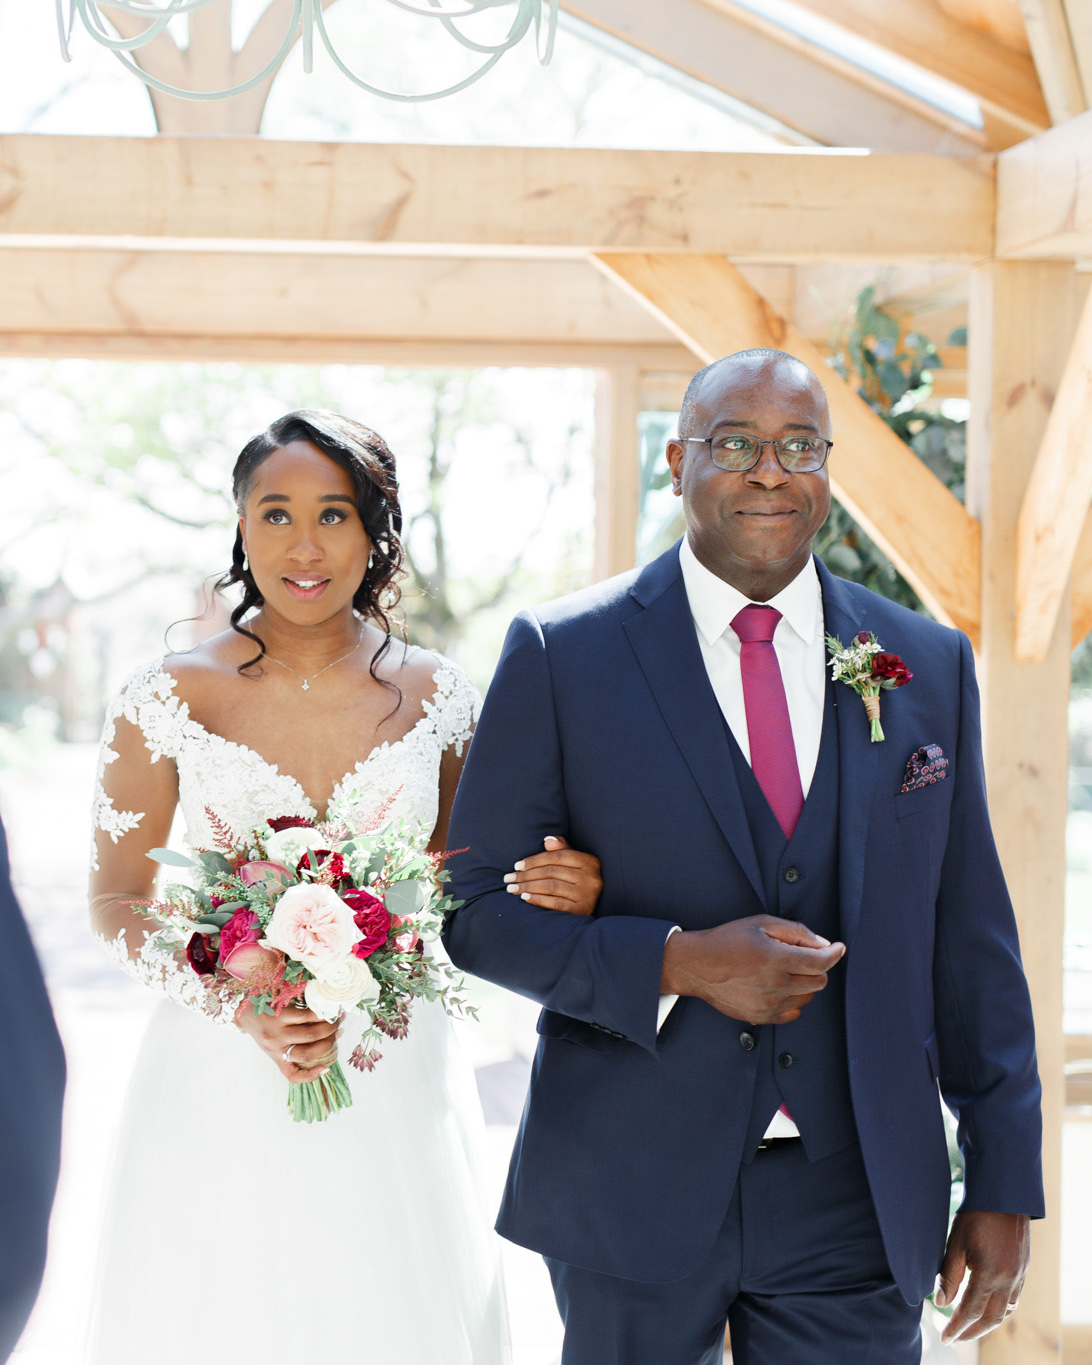 ryan thomas wedding processional bride and father